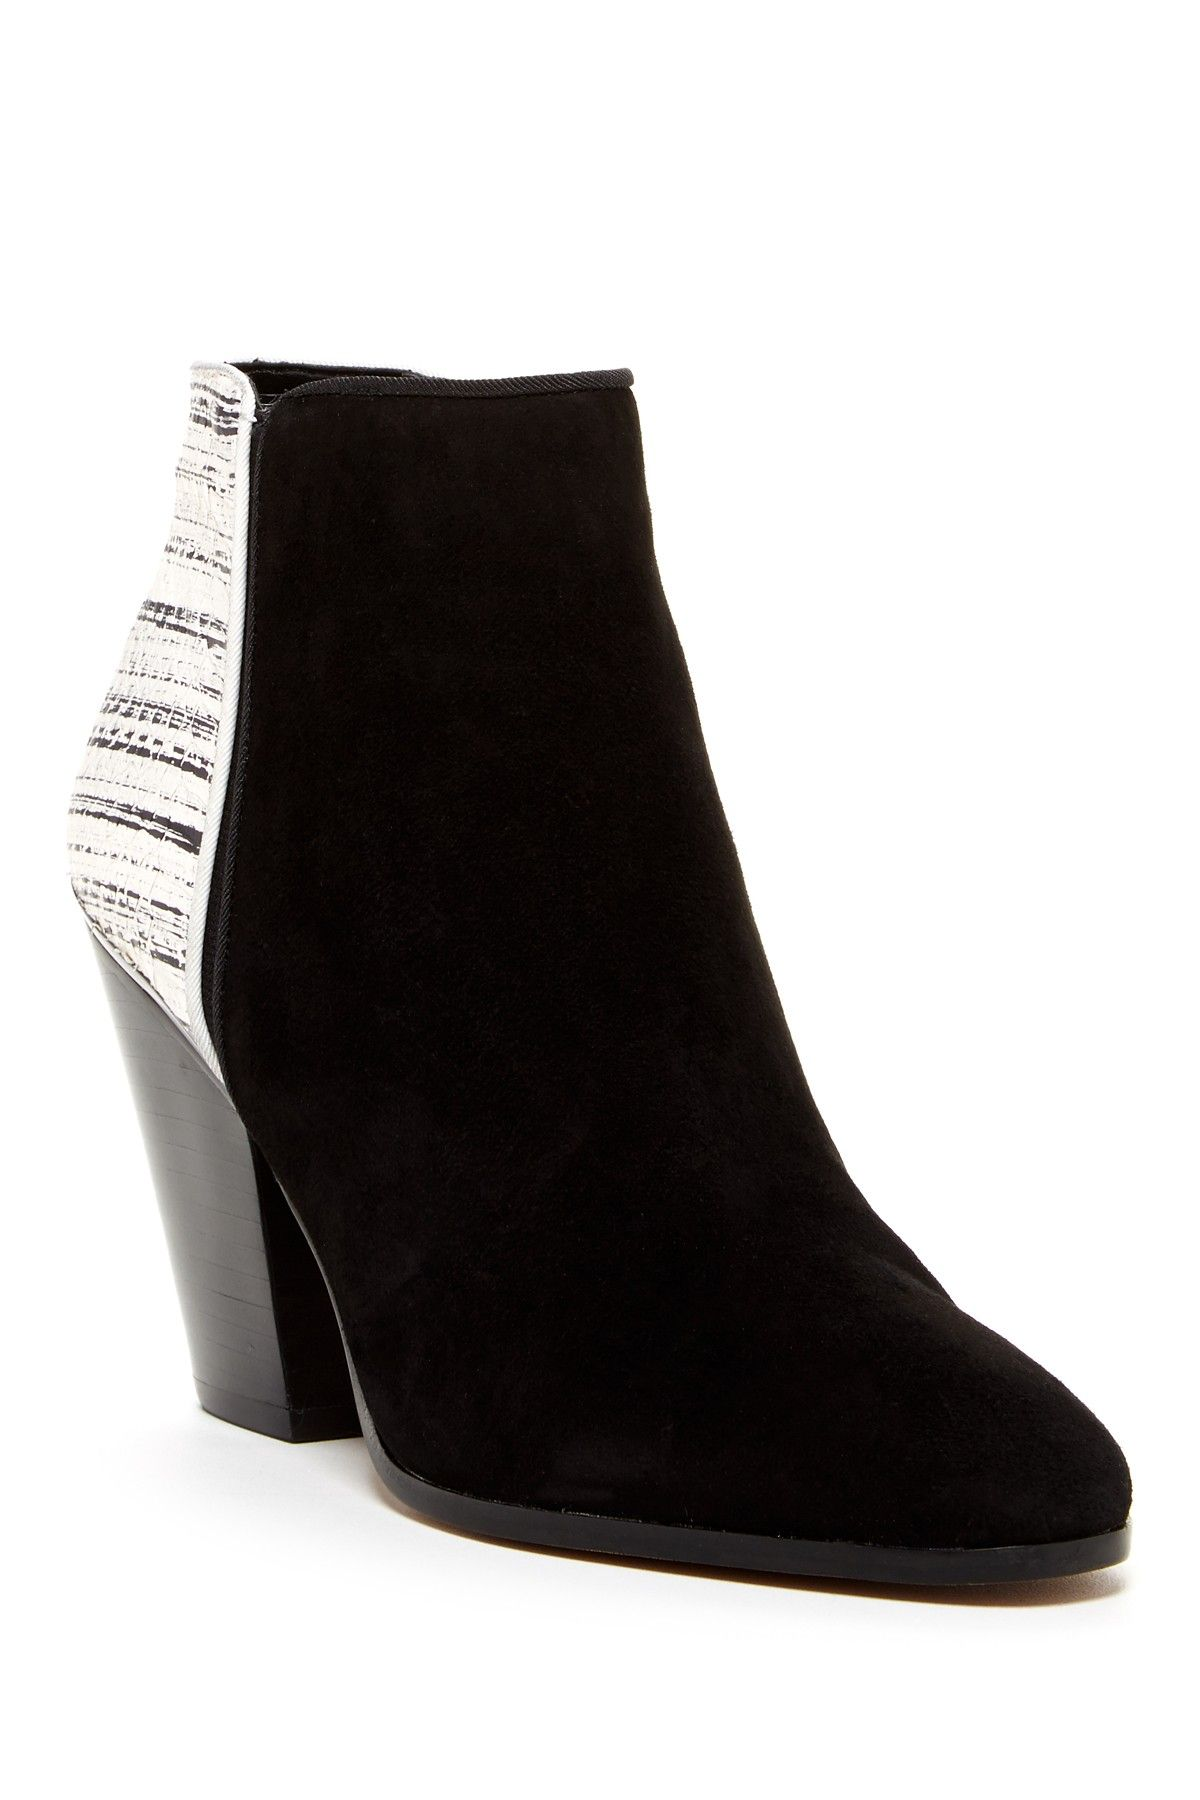 Dolce Vita Holland Boot on HauteLook